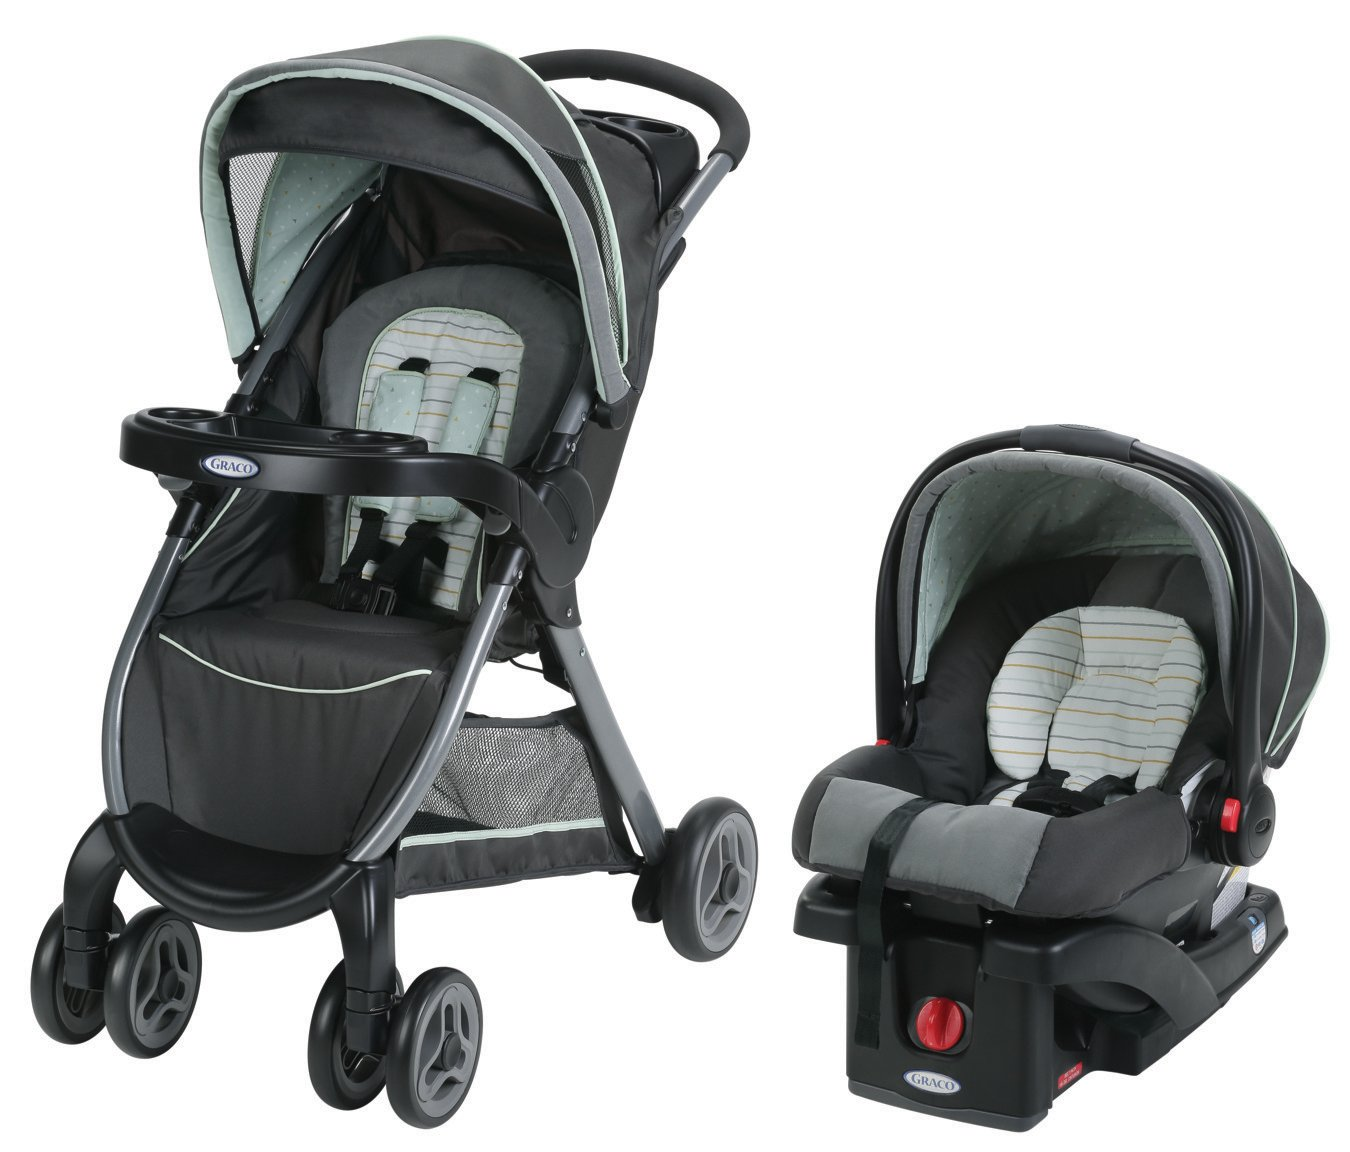 Graco FastAction Travel